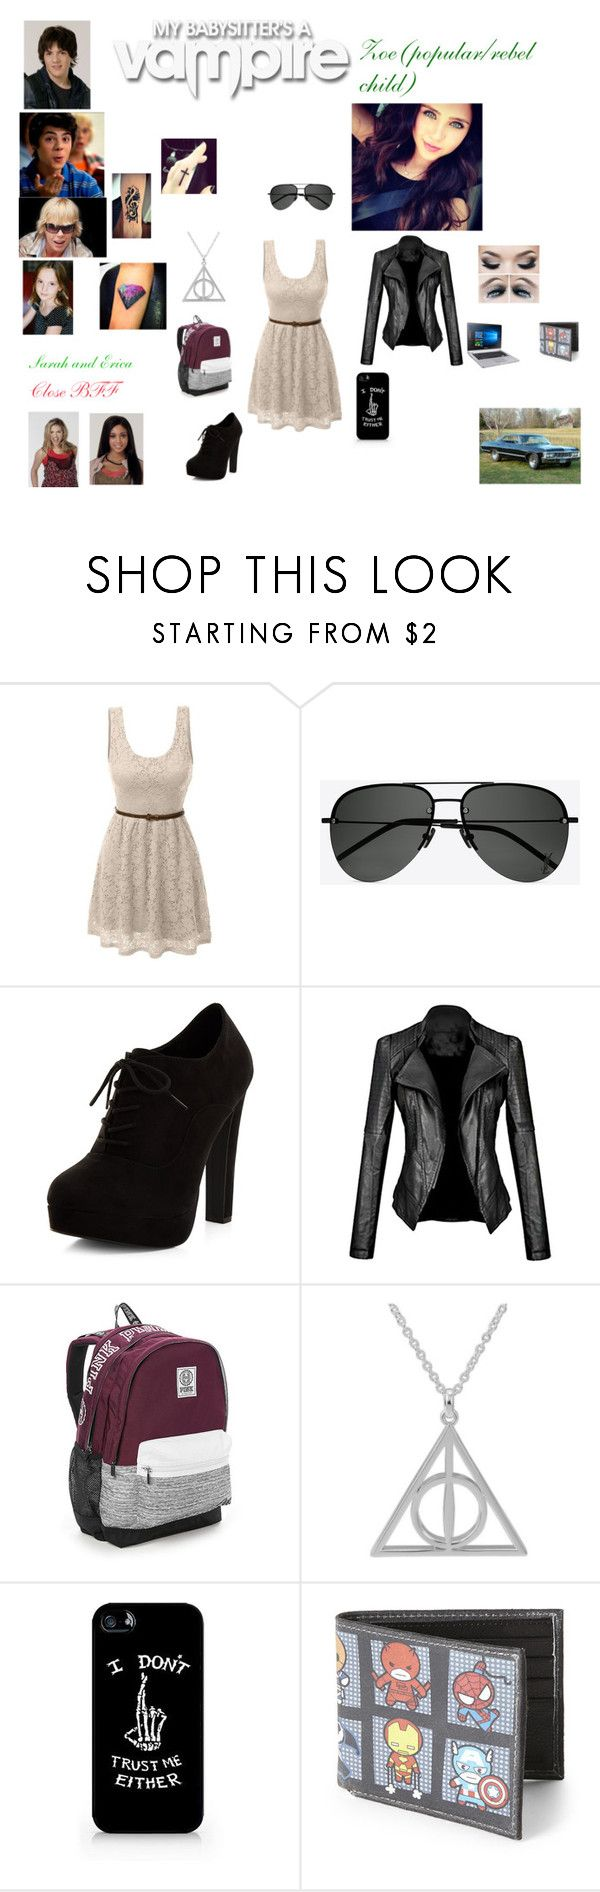 """My Babysitter's A Vampire"" by zoesears on Polyvore featuring Atticus, LE3NO, Yves Saint Laurent, New Look, Victoria's Secret and Marvel"